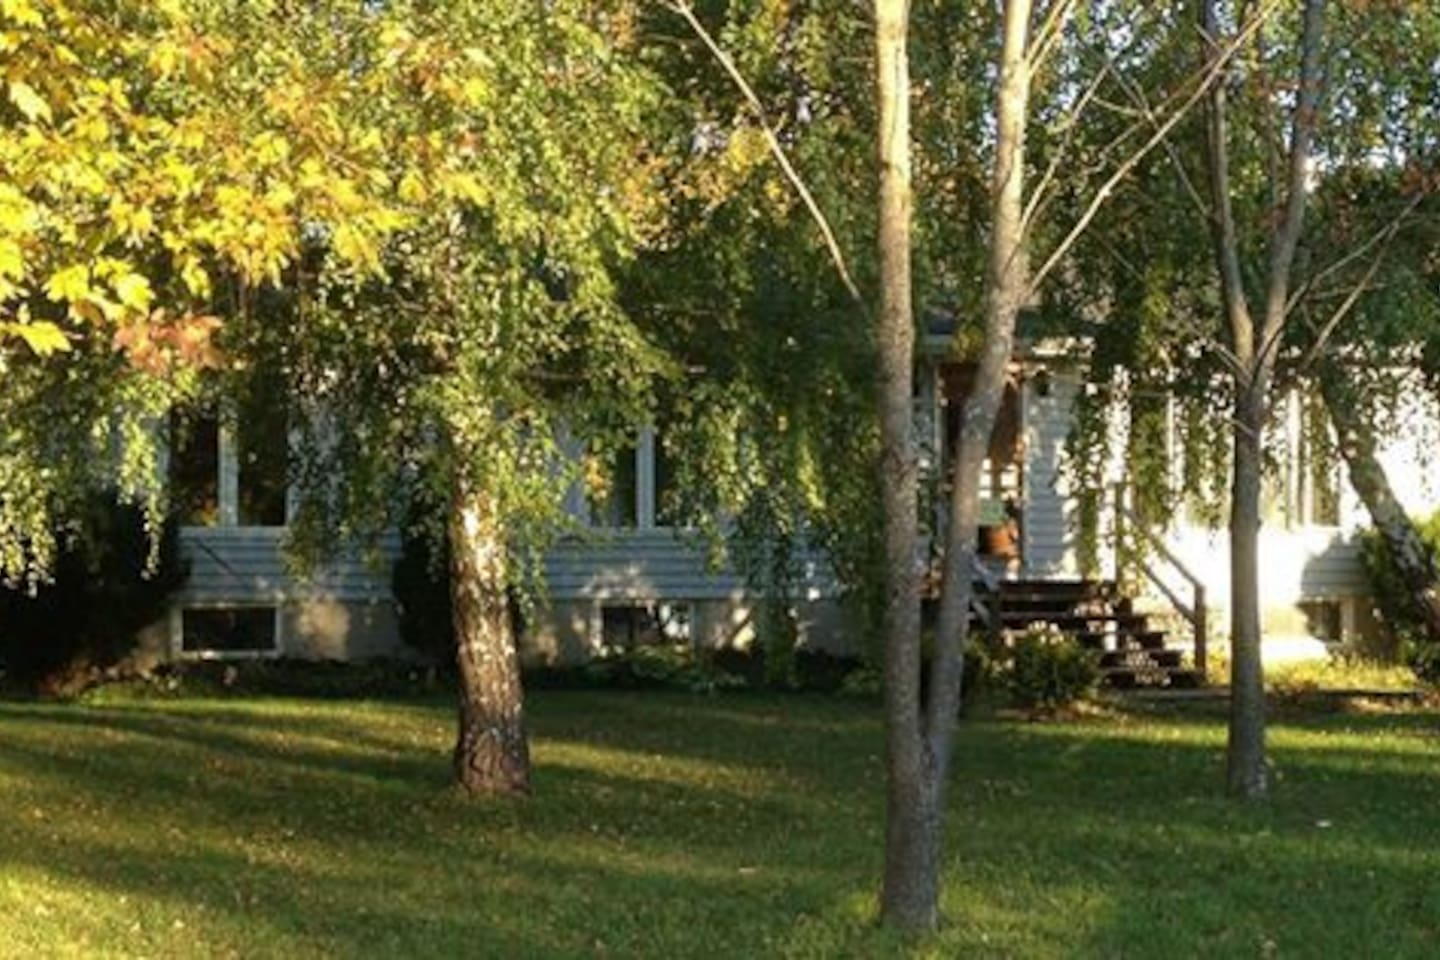 Beautiful birch trees on the front lawn